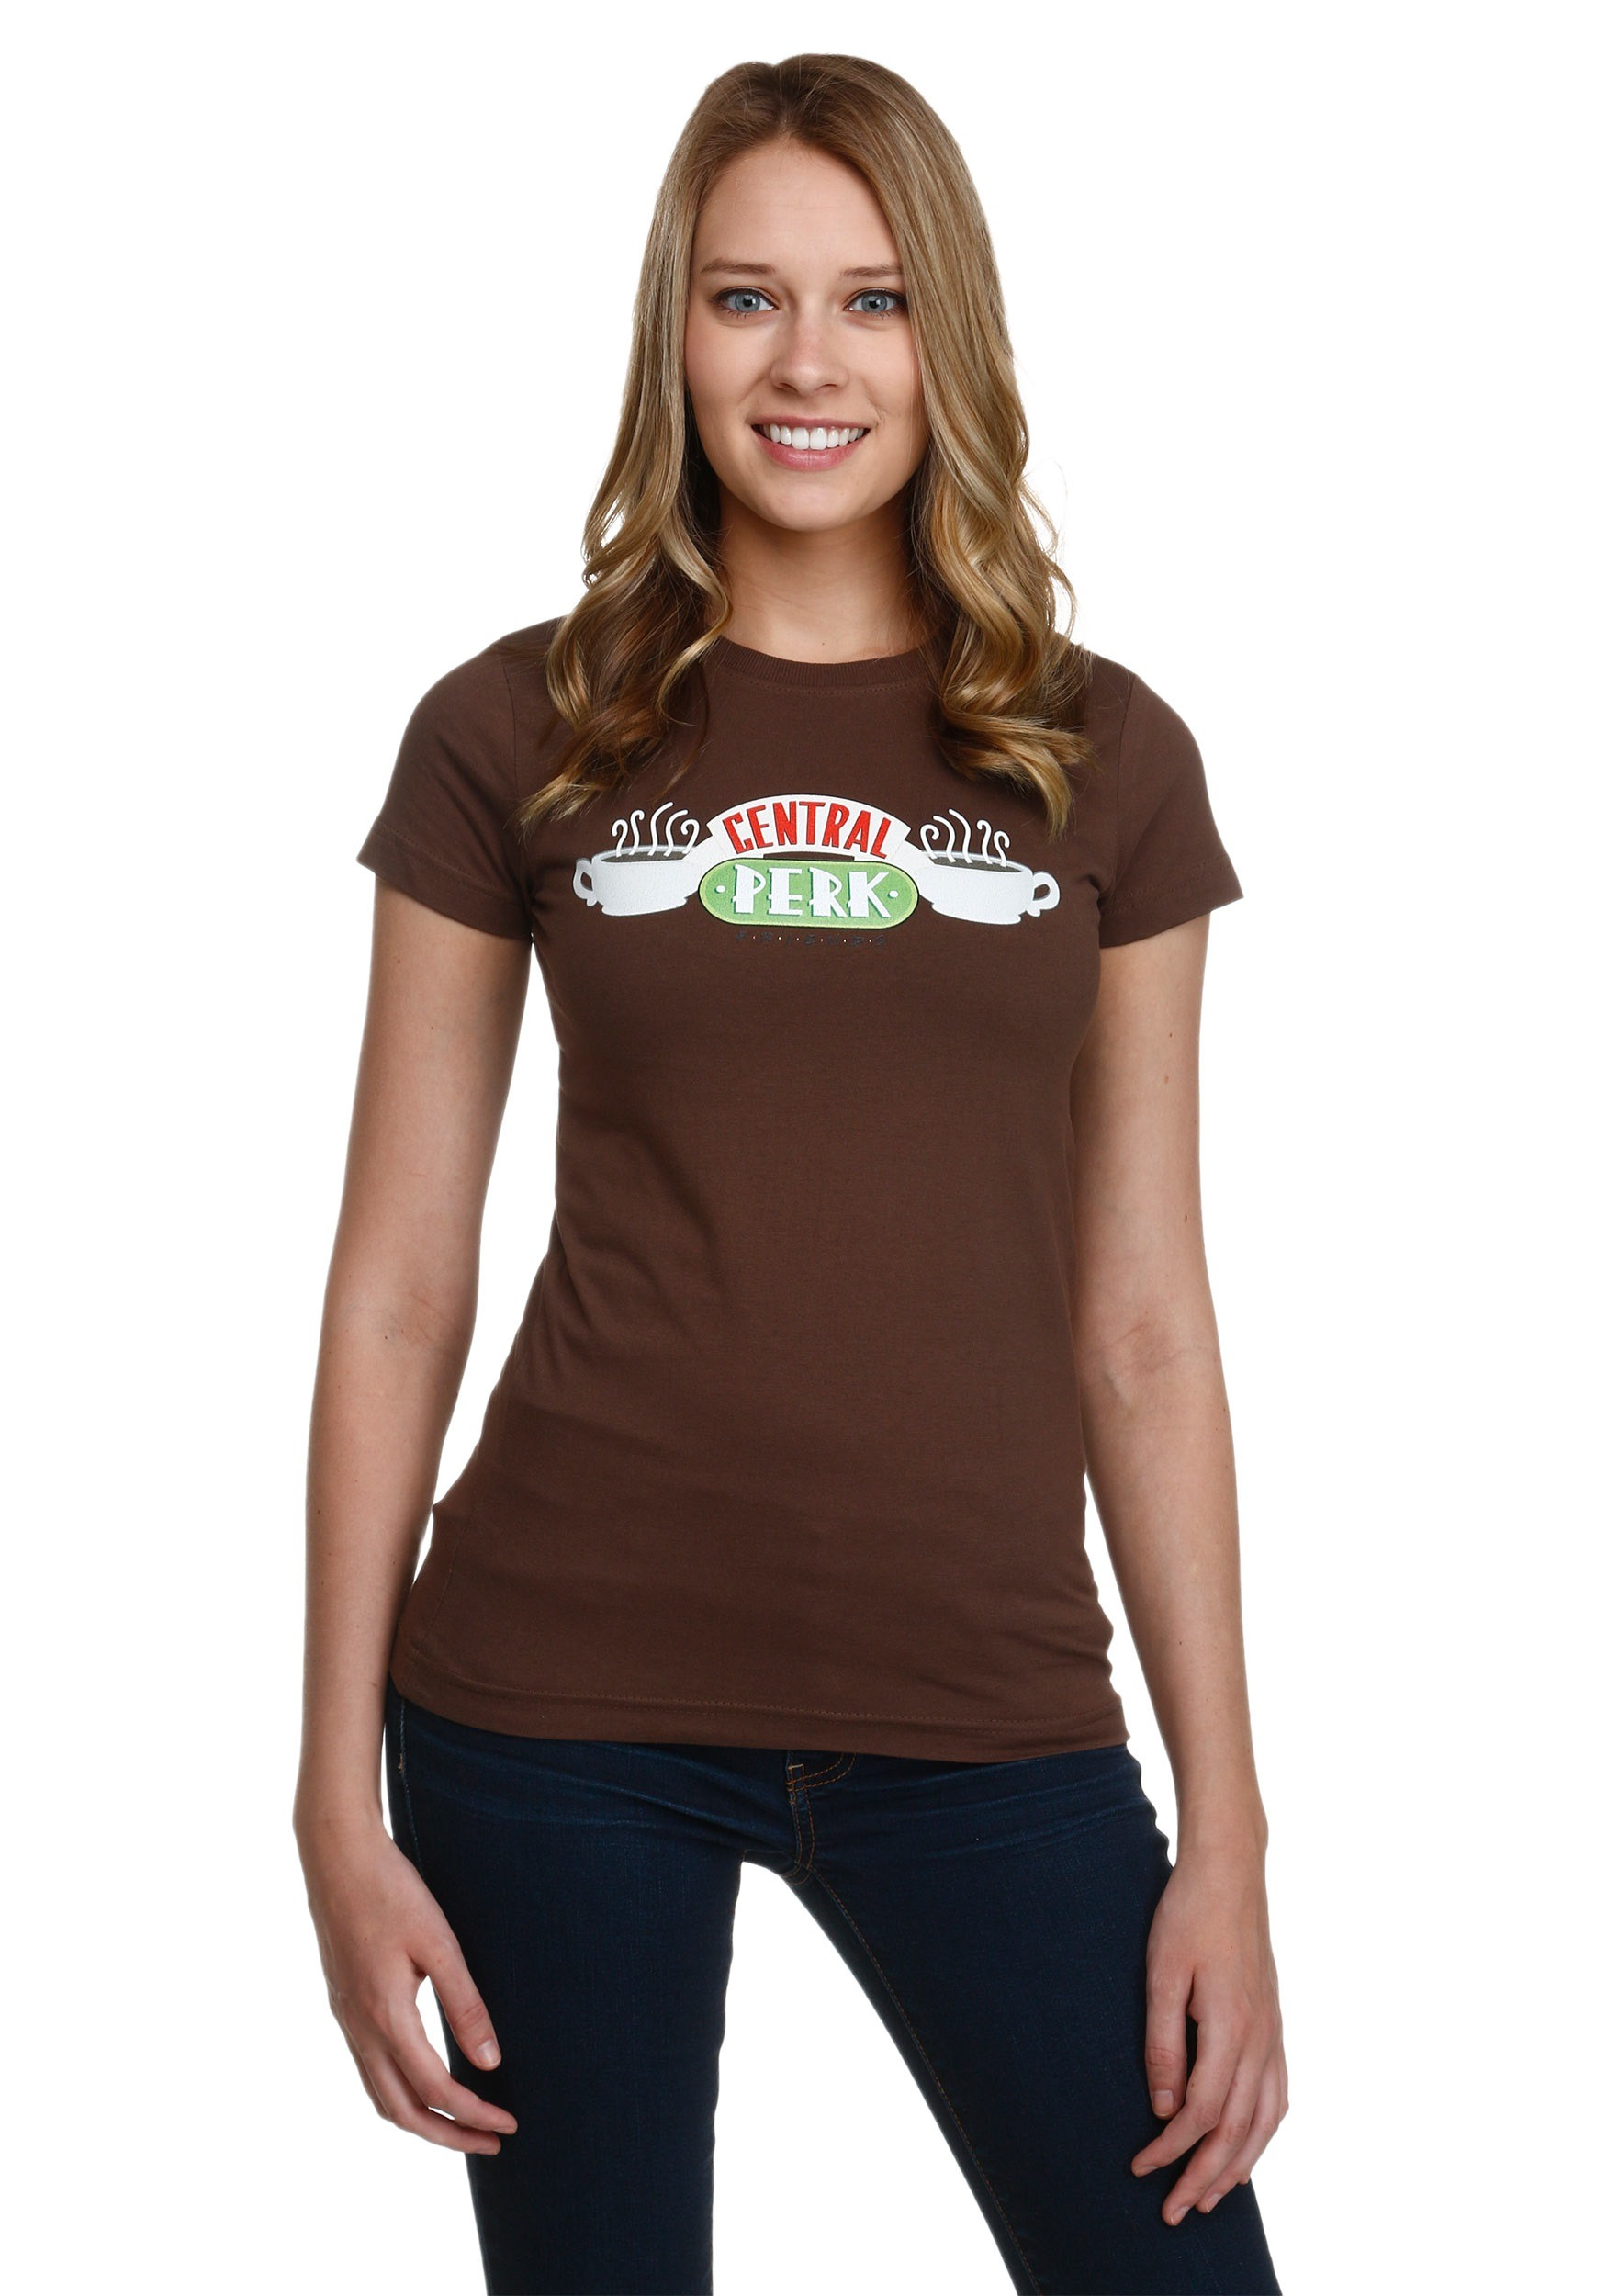 Womens Friends Central Perk T-Shirt TVWBT335JS1